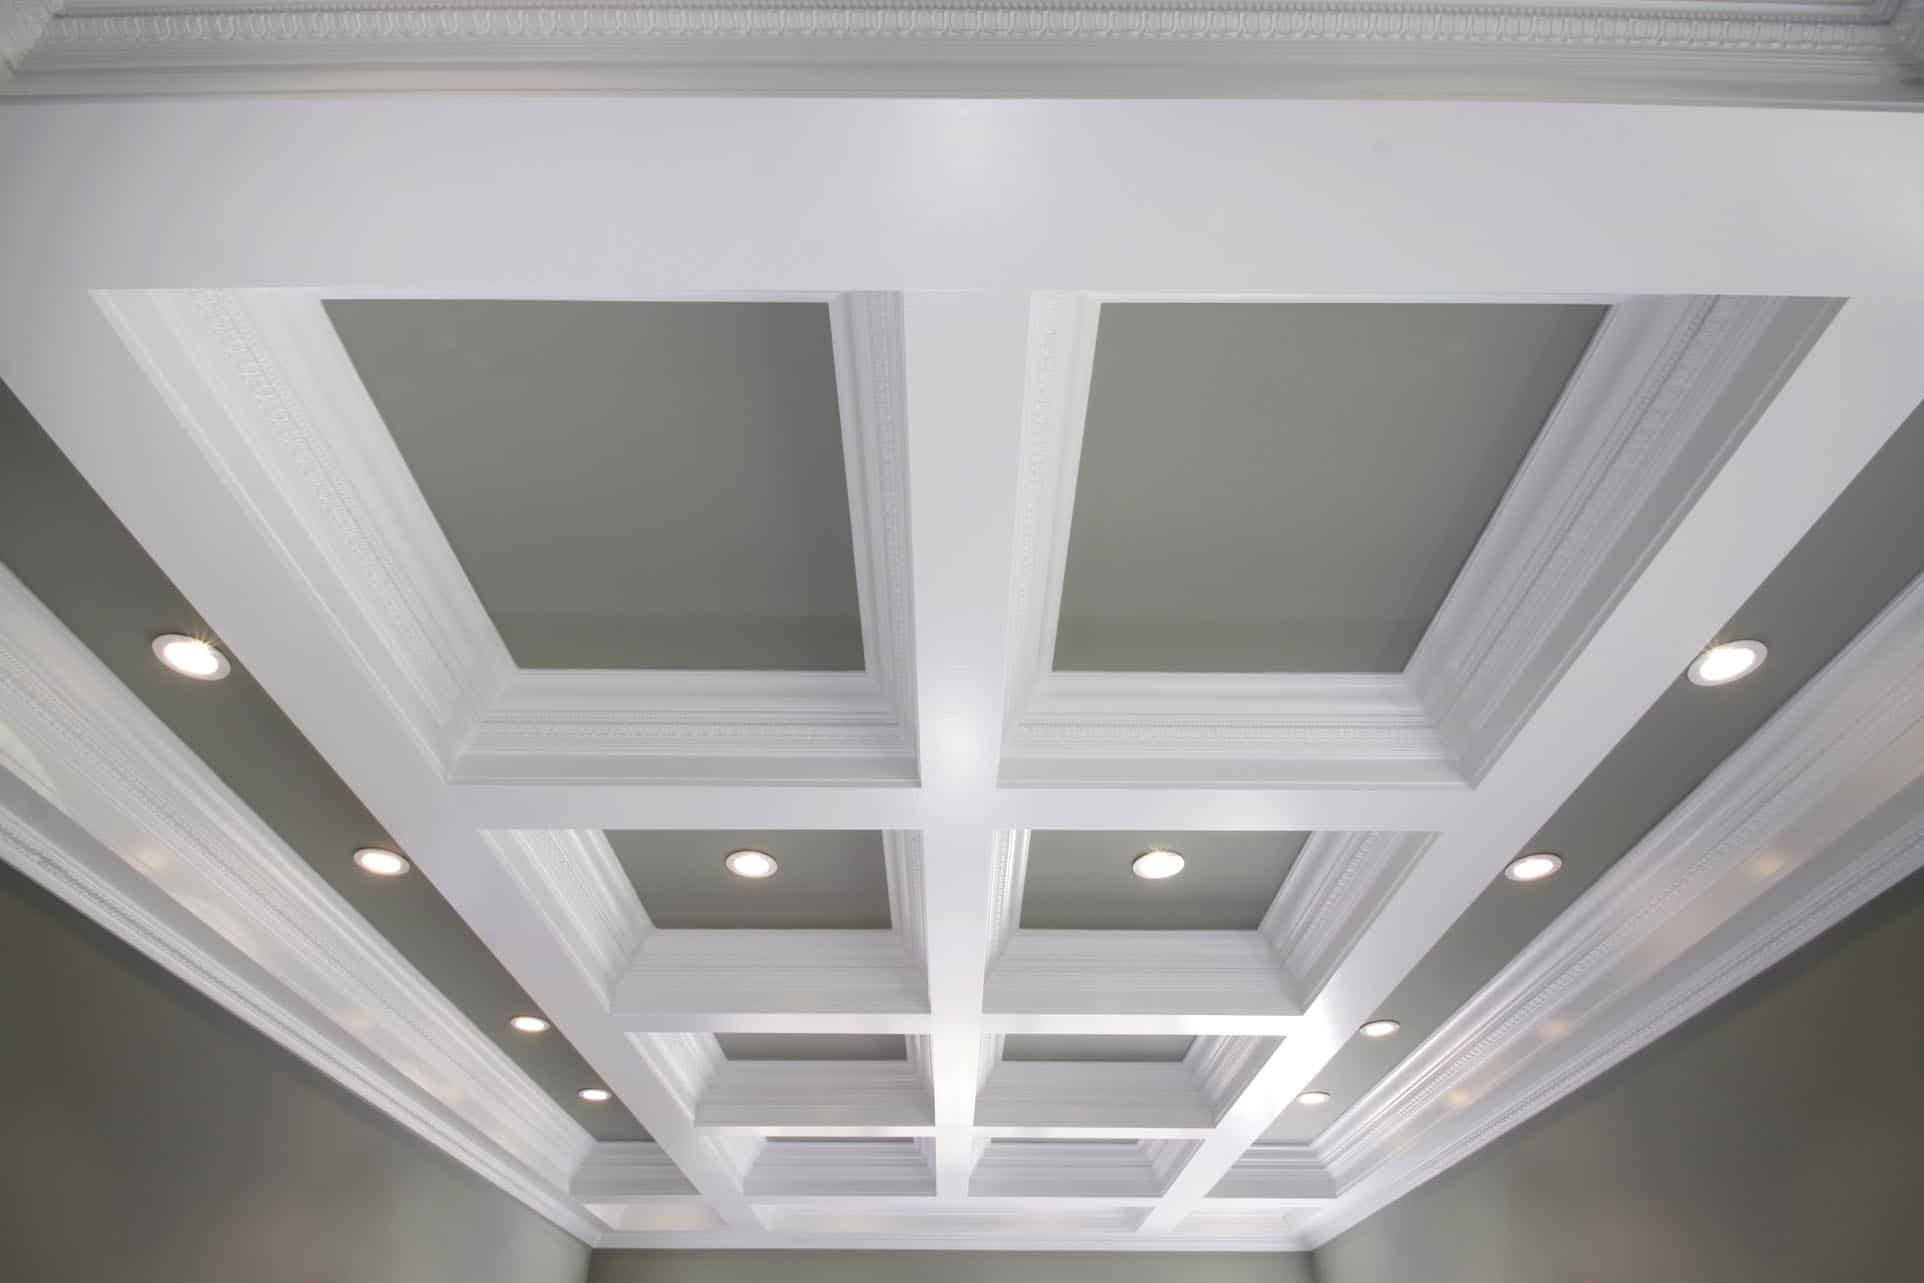 Coffered ceiling design ceiling beams coffer ceiling for Coffered ceiling styles